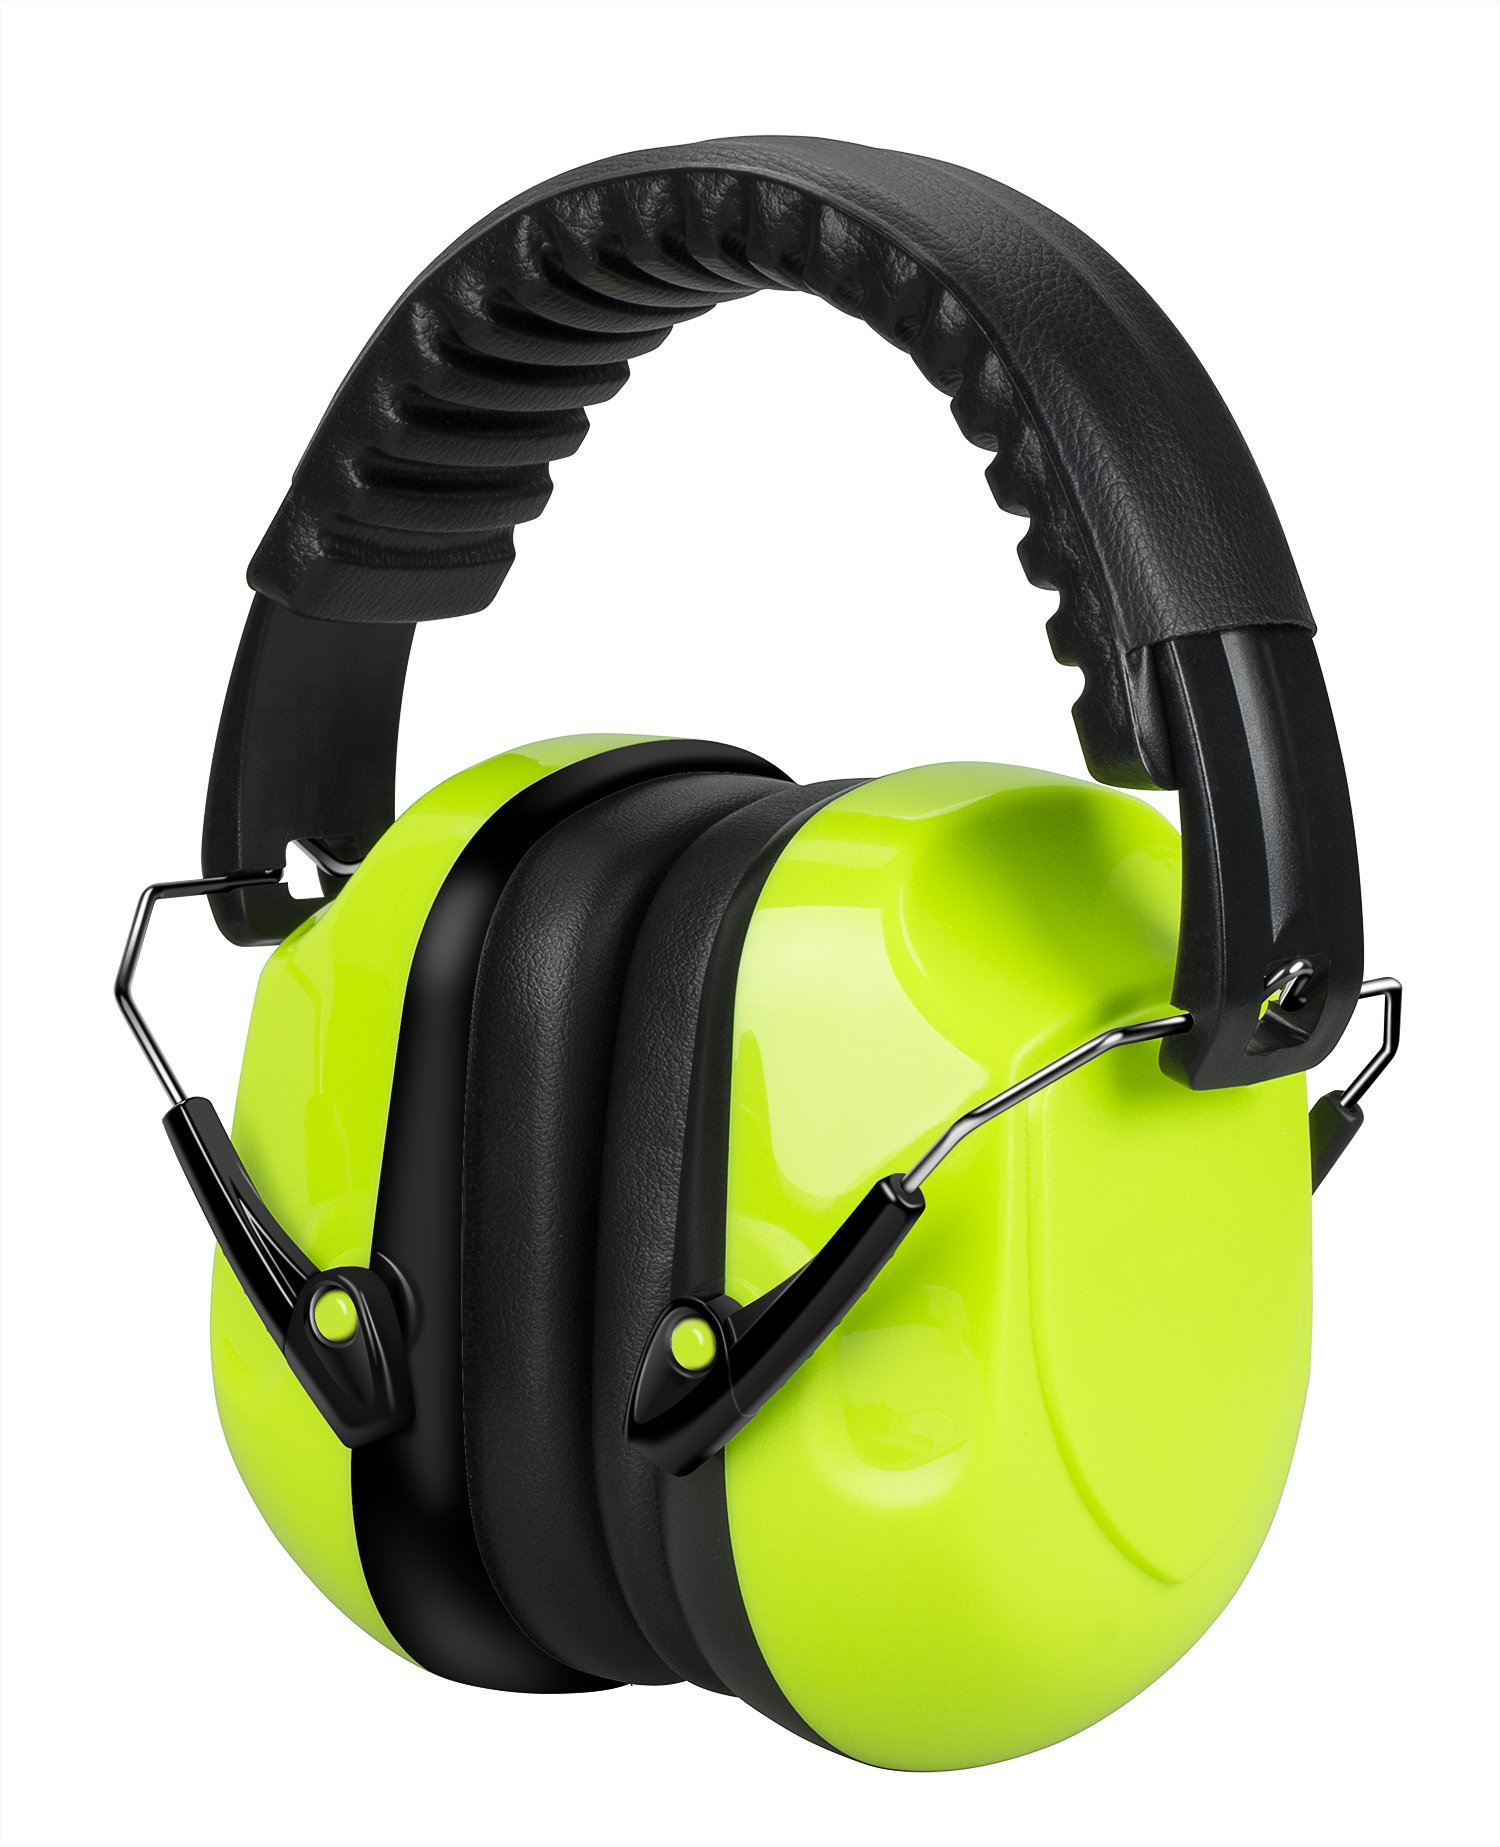 Noise Cancelling Safety Ear Muffs Ear Protection Defenders Earmuffs for Shooting Hunting - Hearing Protection for Kids Adults Men Women with Adjustable Headband (Large)